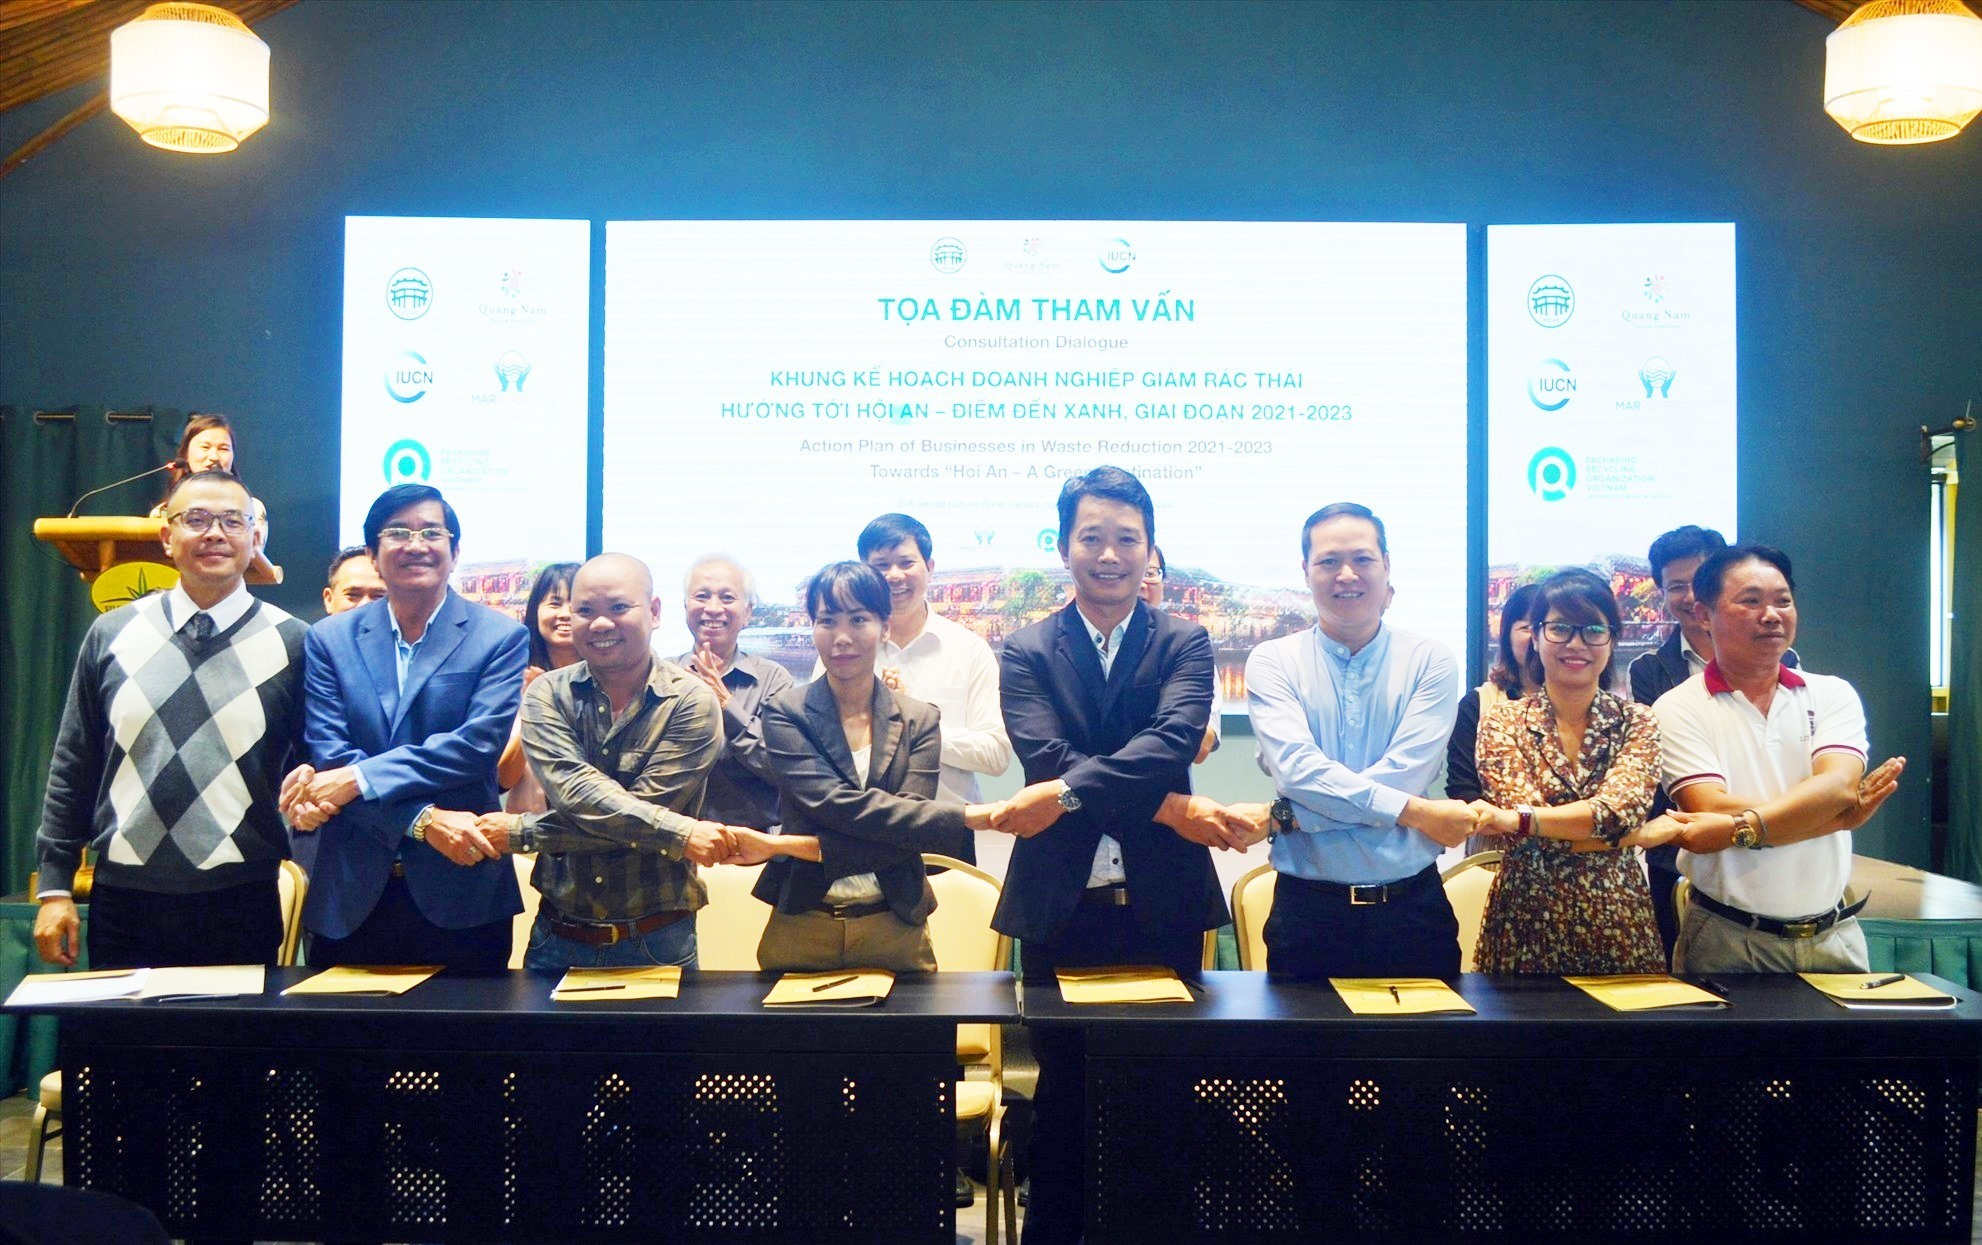 Commitment of zero plastic waste tourism by travel businesses in Hoi An city